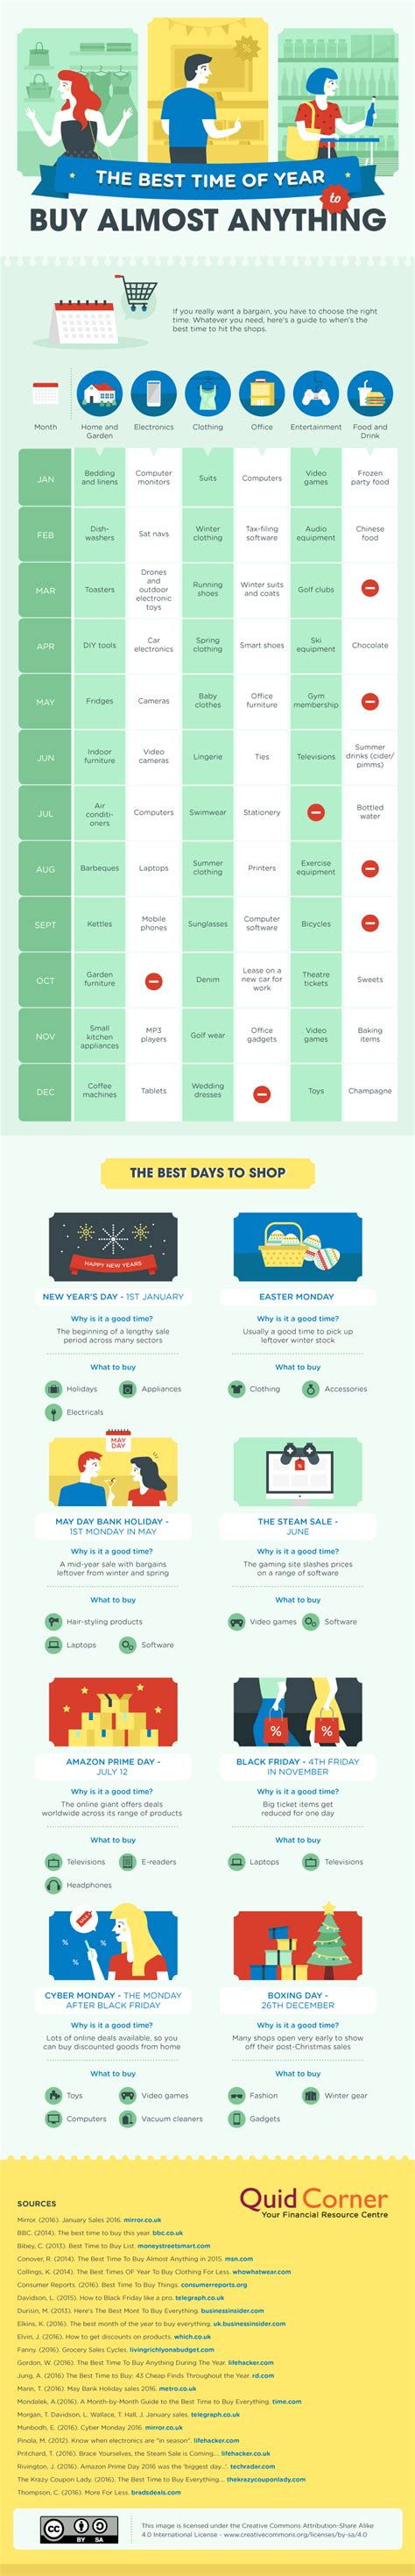 the best time of year to buy a house the best time of year to buy almost anything infographic visualistan